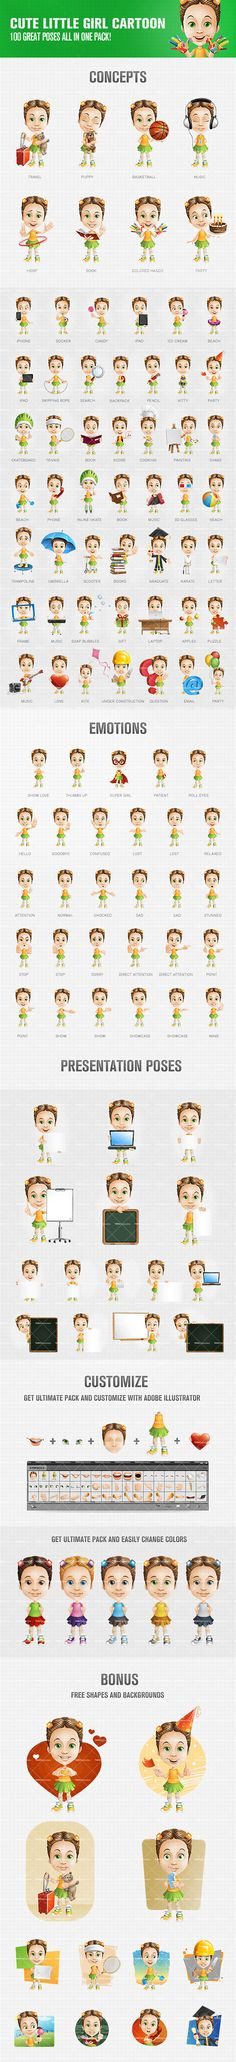 Cute little girl cartoon character that will help you to liven up your artworks and make them more animated and attractive. Our little lady here comes in 100 vibrant poses   12 extra bonus shapes and backgrounds. Check it out! Continue reading →